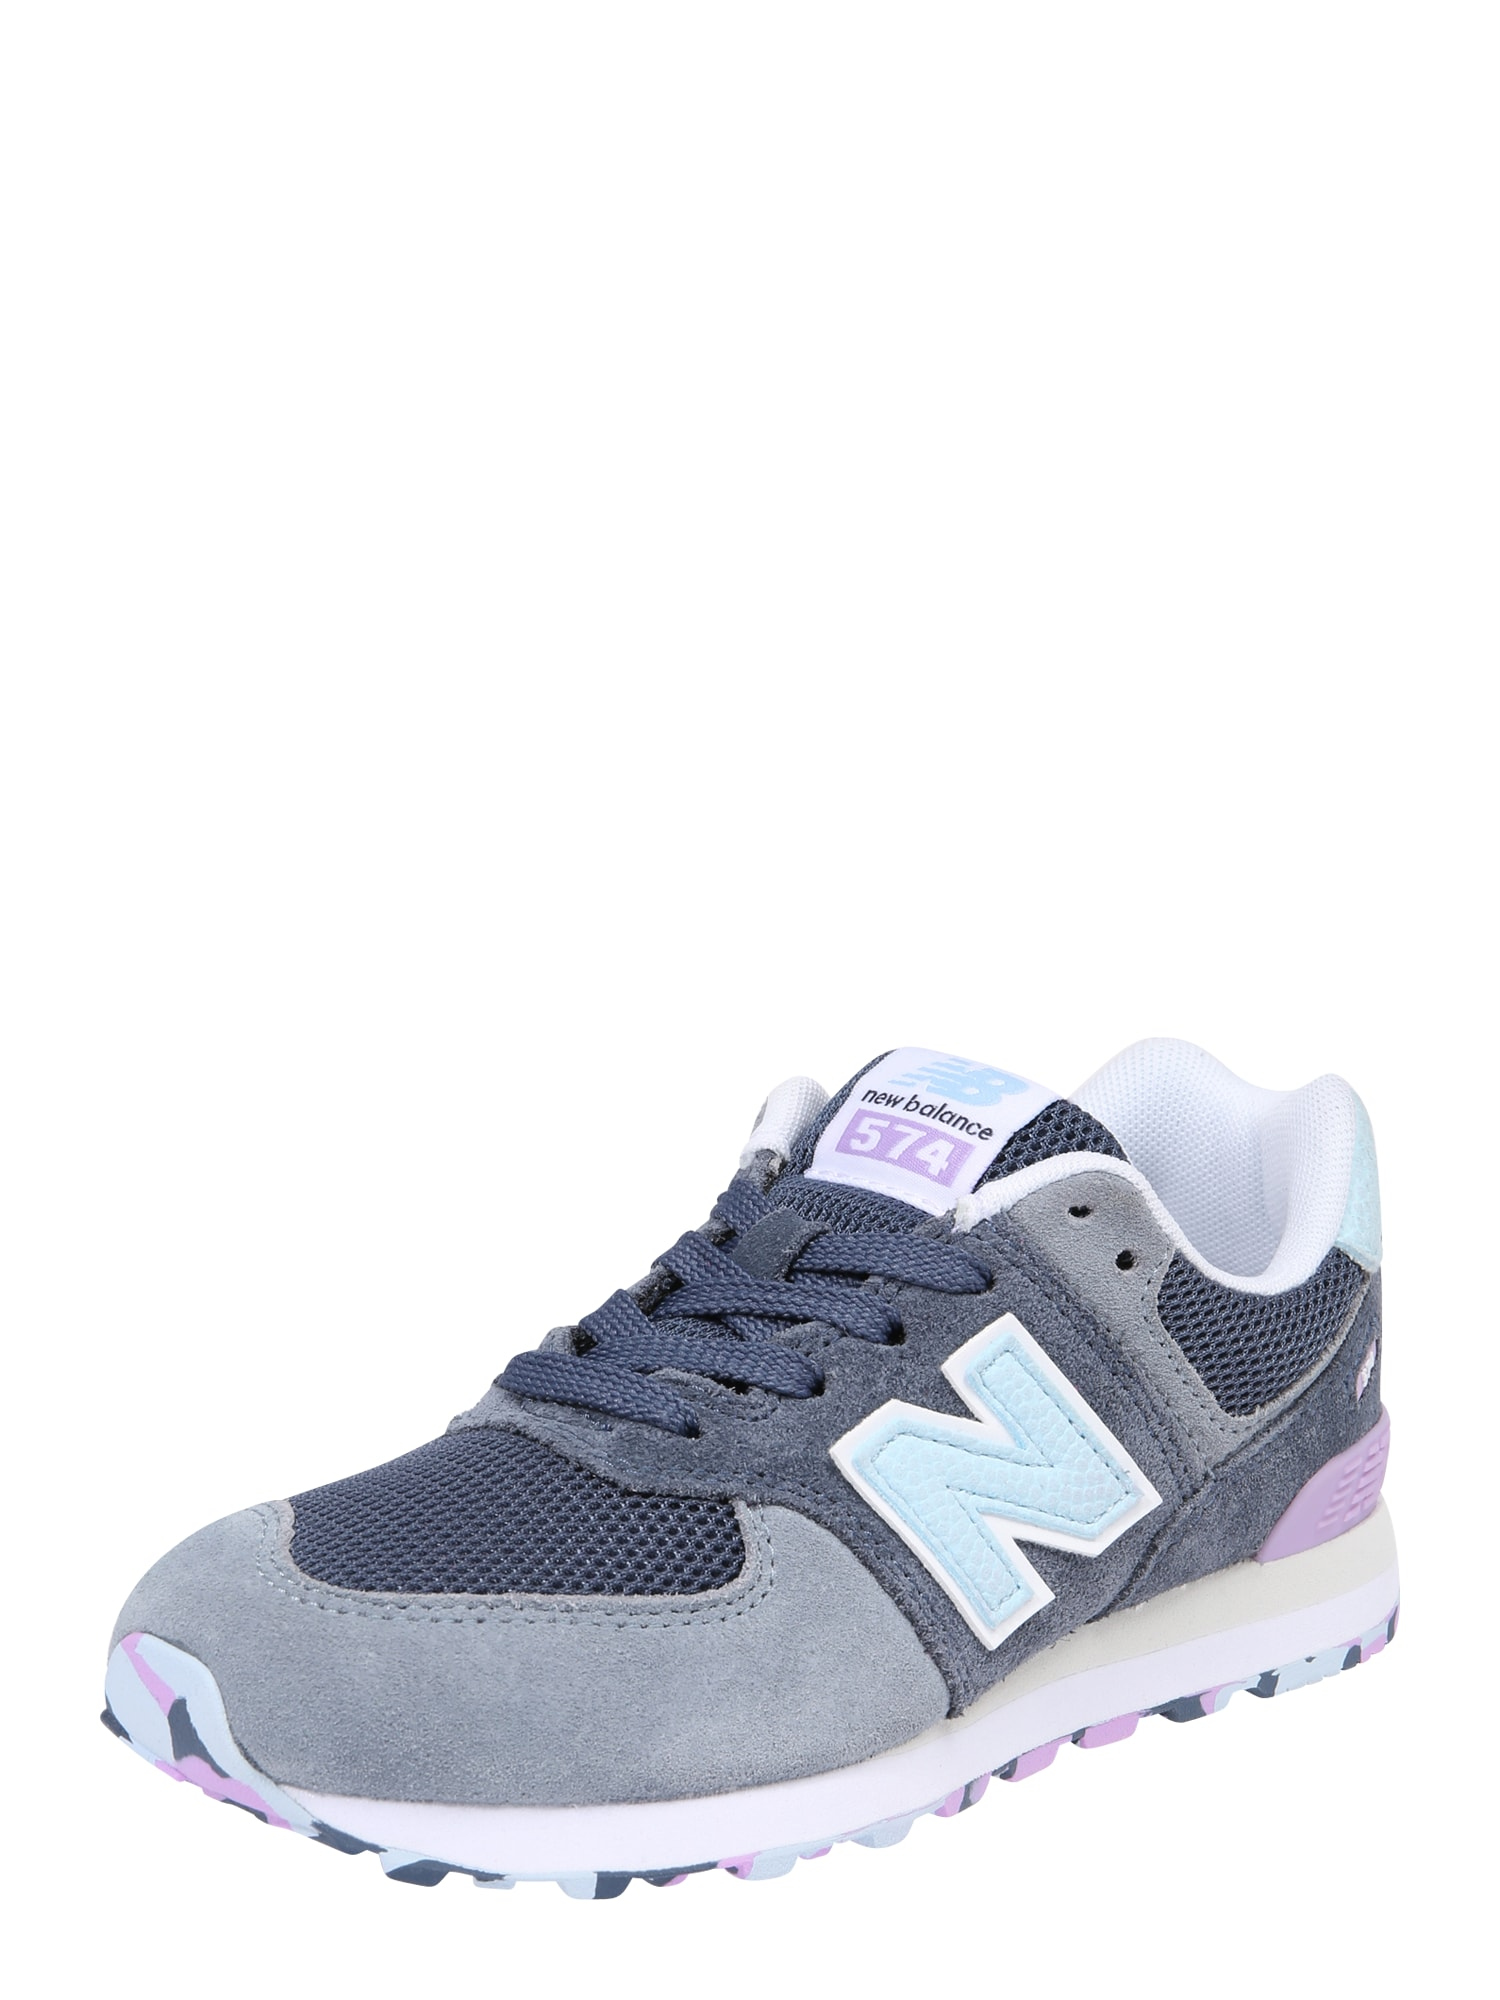 New Balance, Jongens Sportschoen 'PC574 M', smoky blue / lila